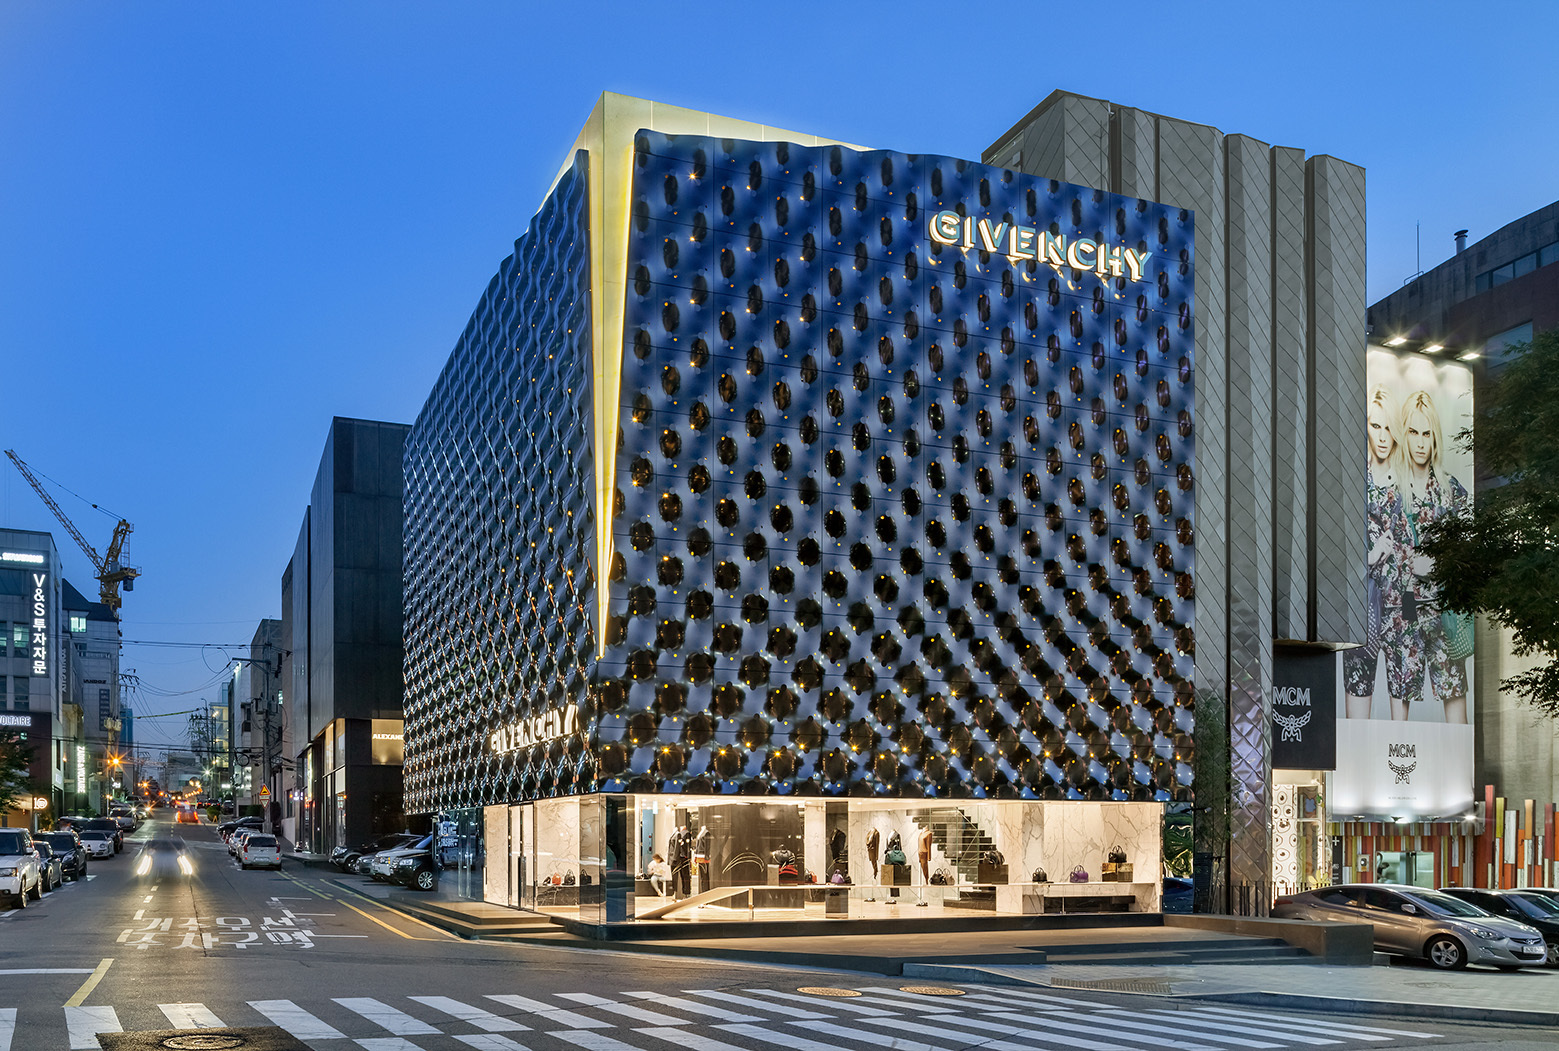 givenchy-flagship-store-in-seoul-piuarch-06